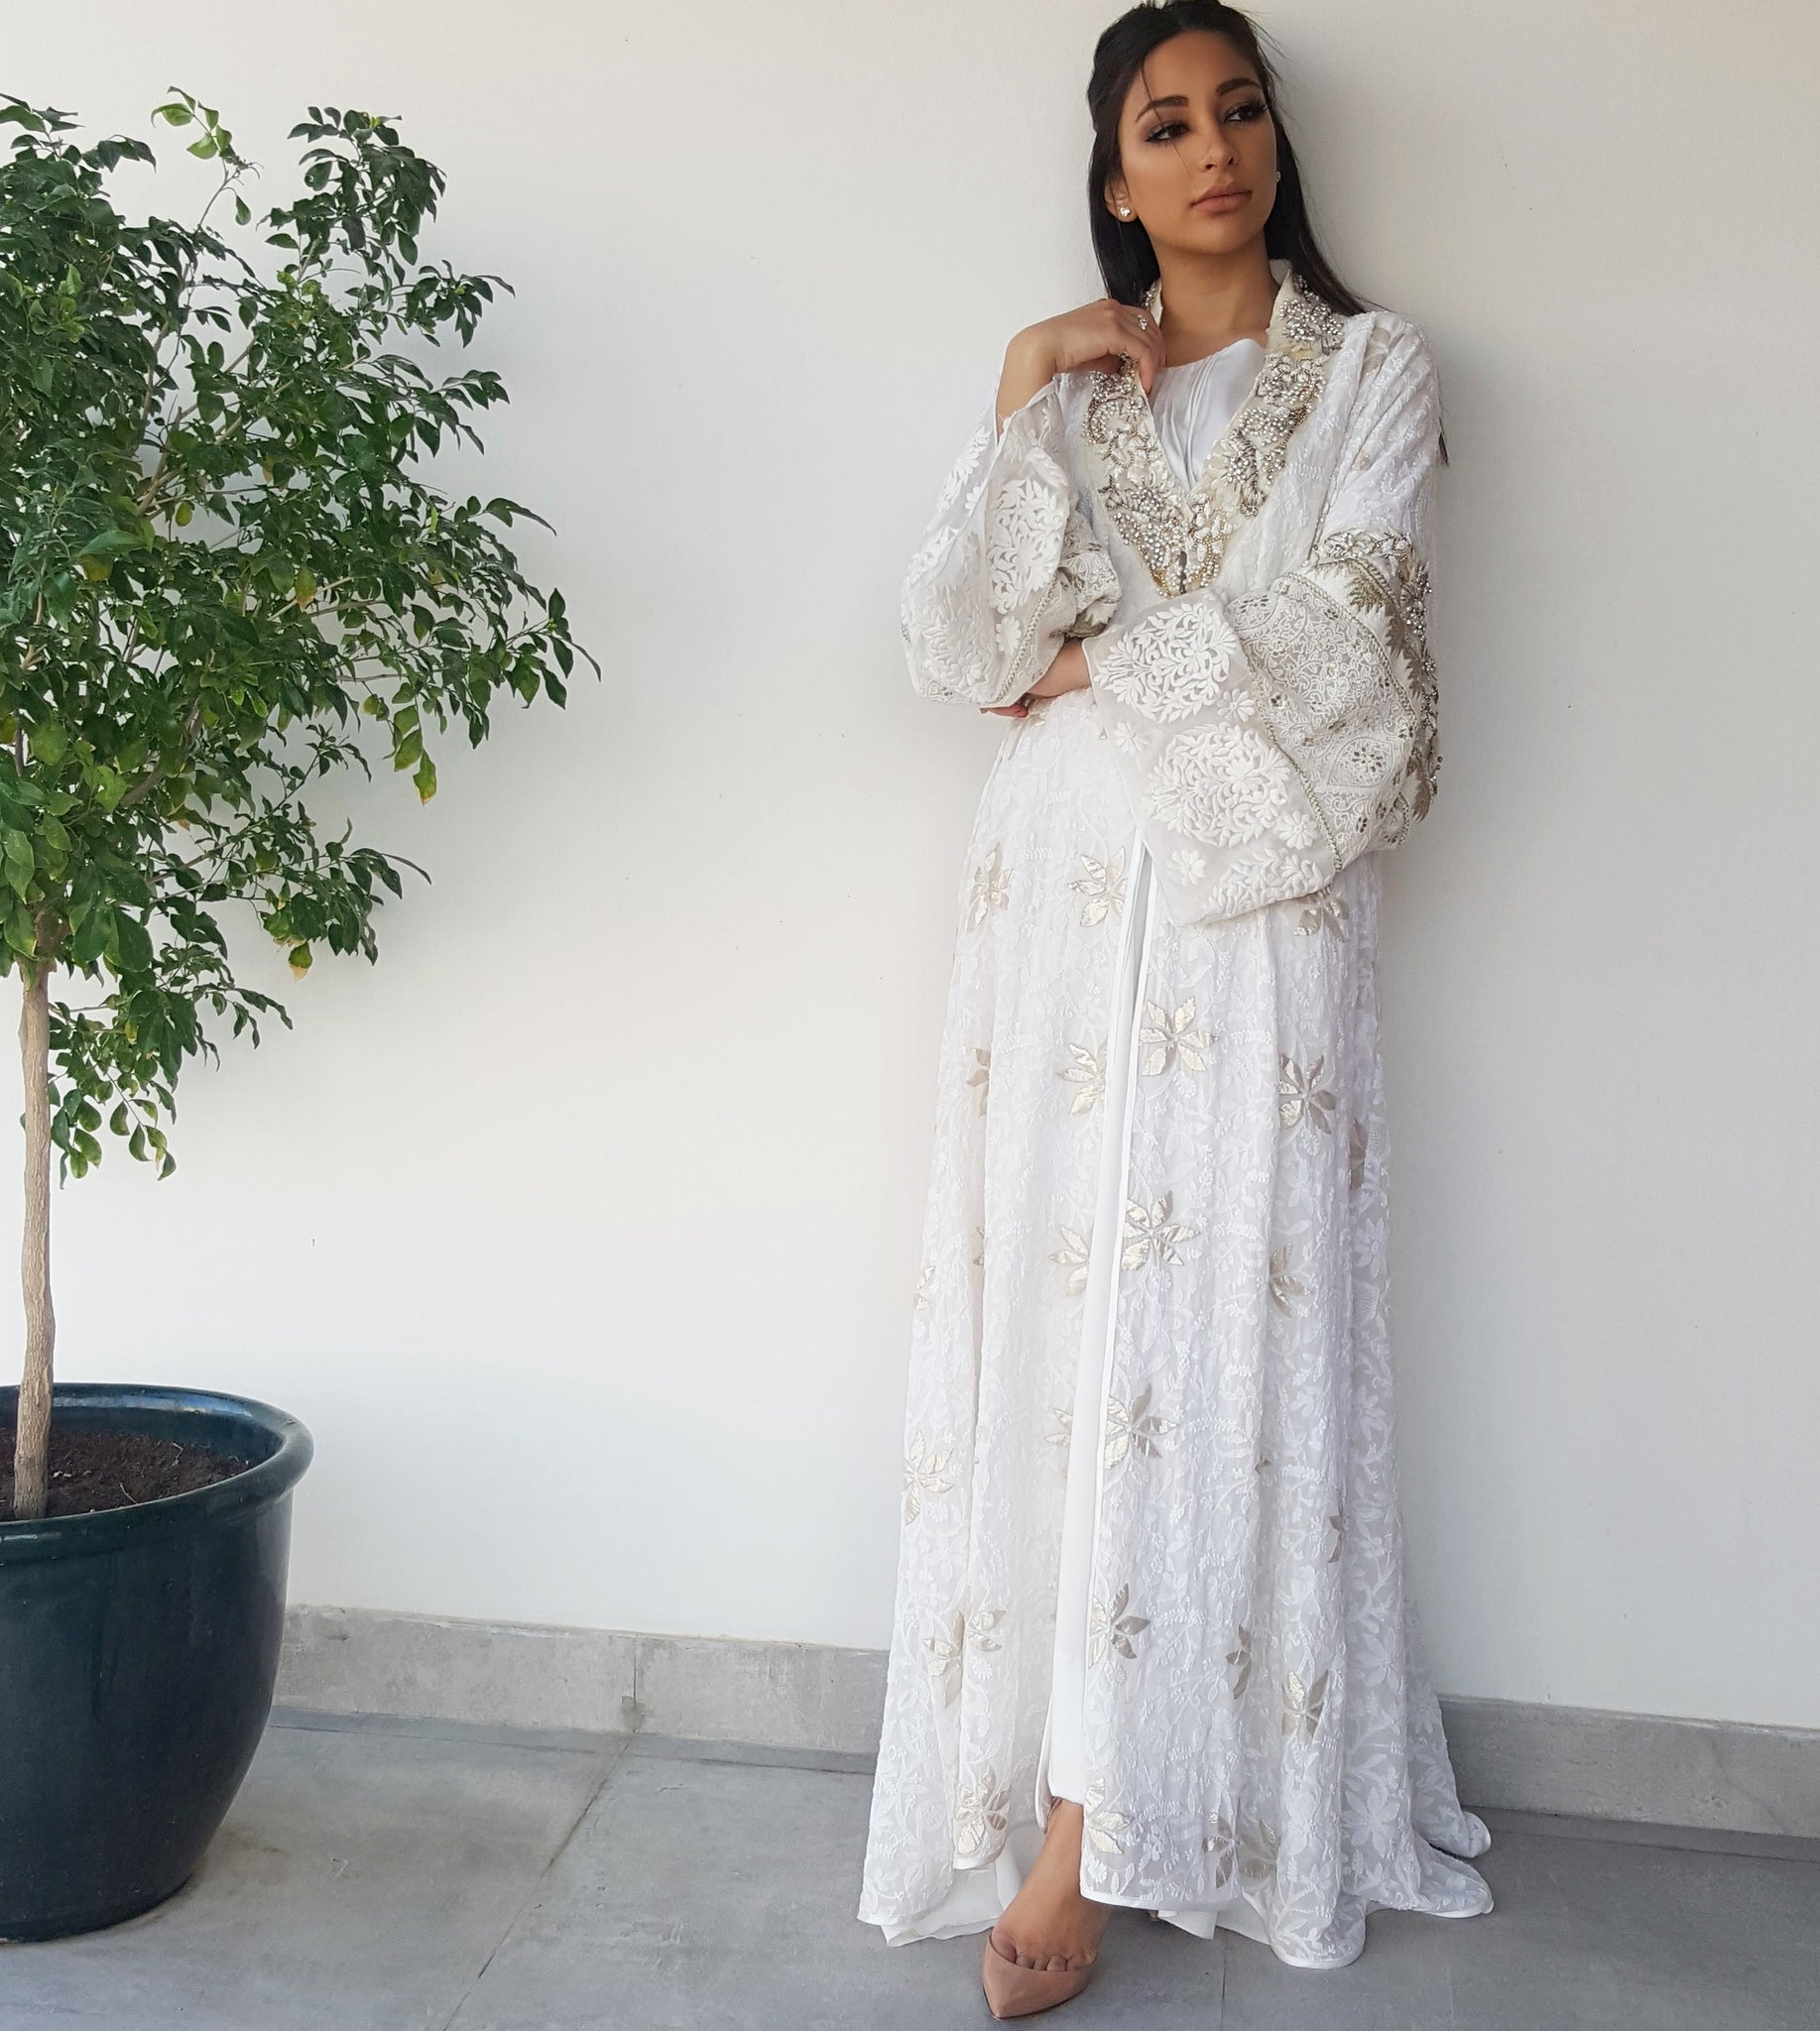 Qabeela Bridal Abaya in Off White Hand Embroidered With Matt gold Embellishments